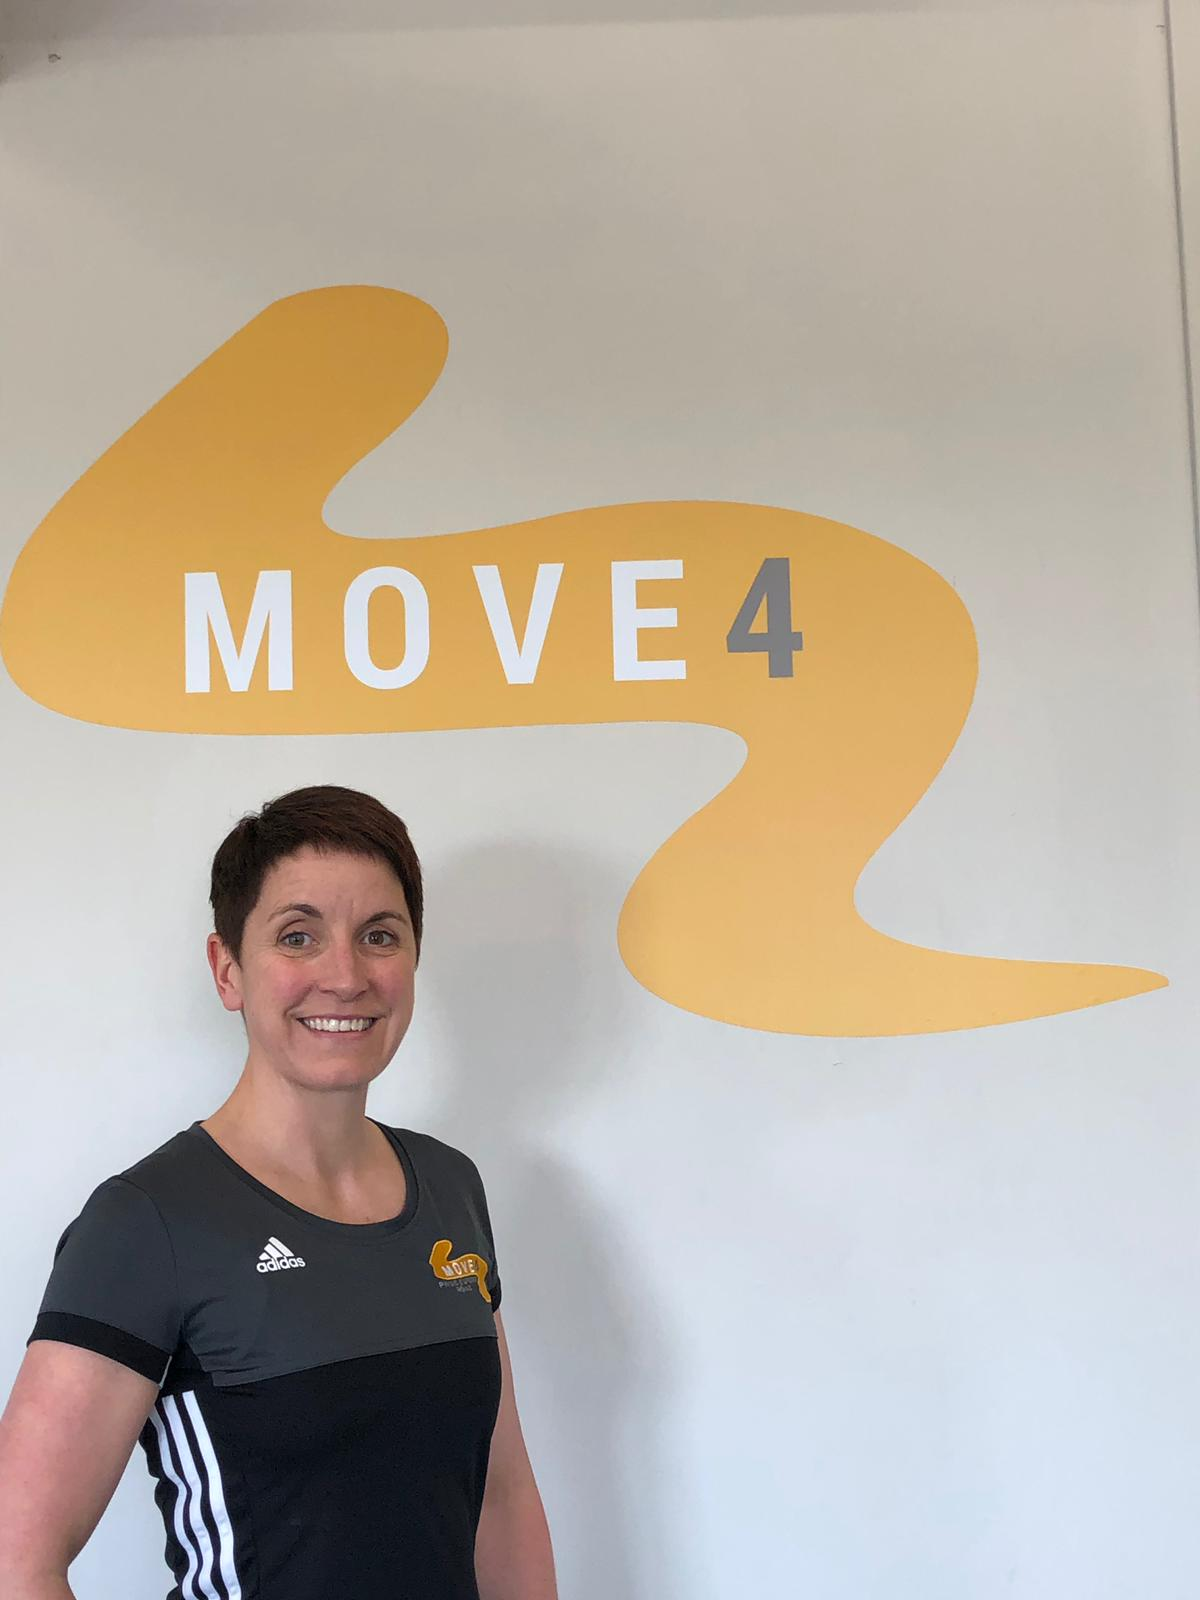 Leian Lee - BSc (Hons) BSc (Hons) MCSPExtended scope practitioner (ESP) and Injection TherapistAPPI Pilates InstructorMother of 3Marathon RunnerGraduate in Physiology - University of SunderlandGraduate in Physiotherapy - University of Northumbria